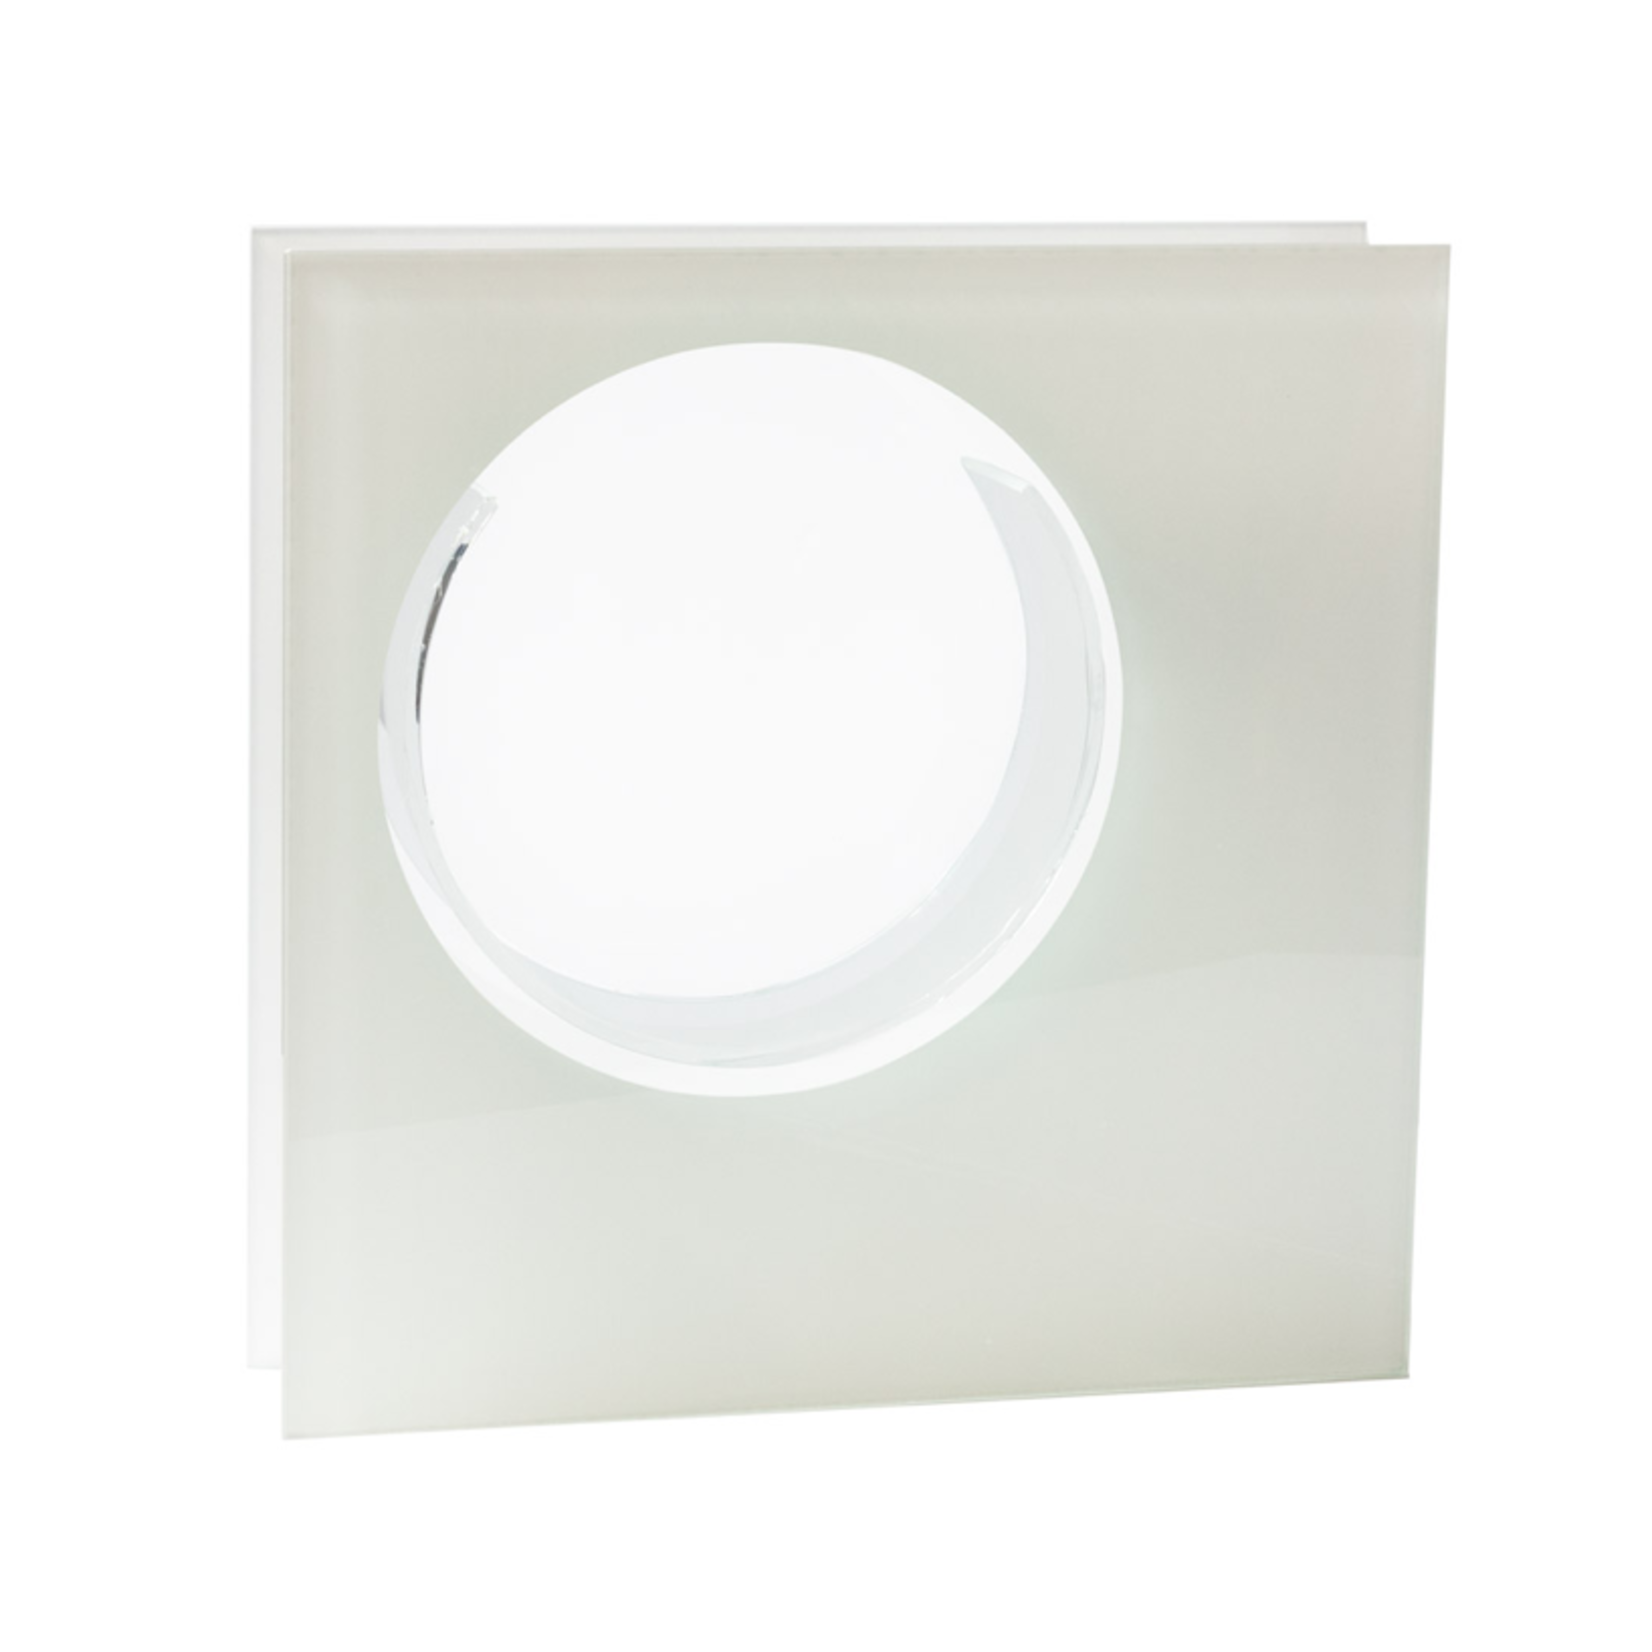 """10""""H X 10""""L X 2.5"""" SQUARE PLATED WITH ROUND GLASS"""